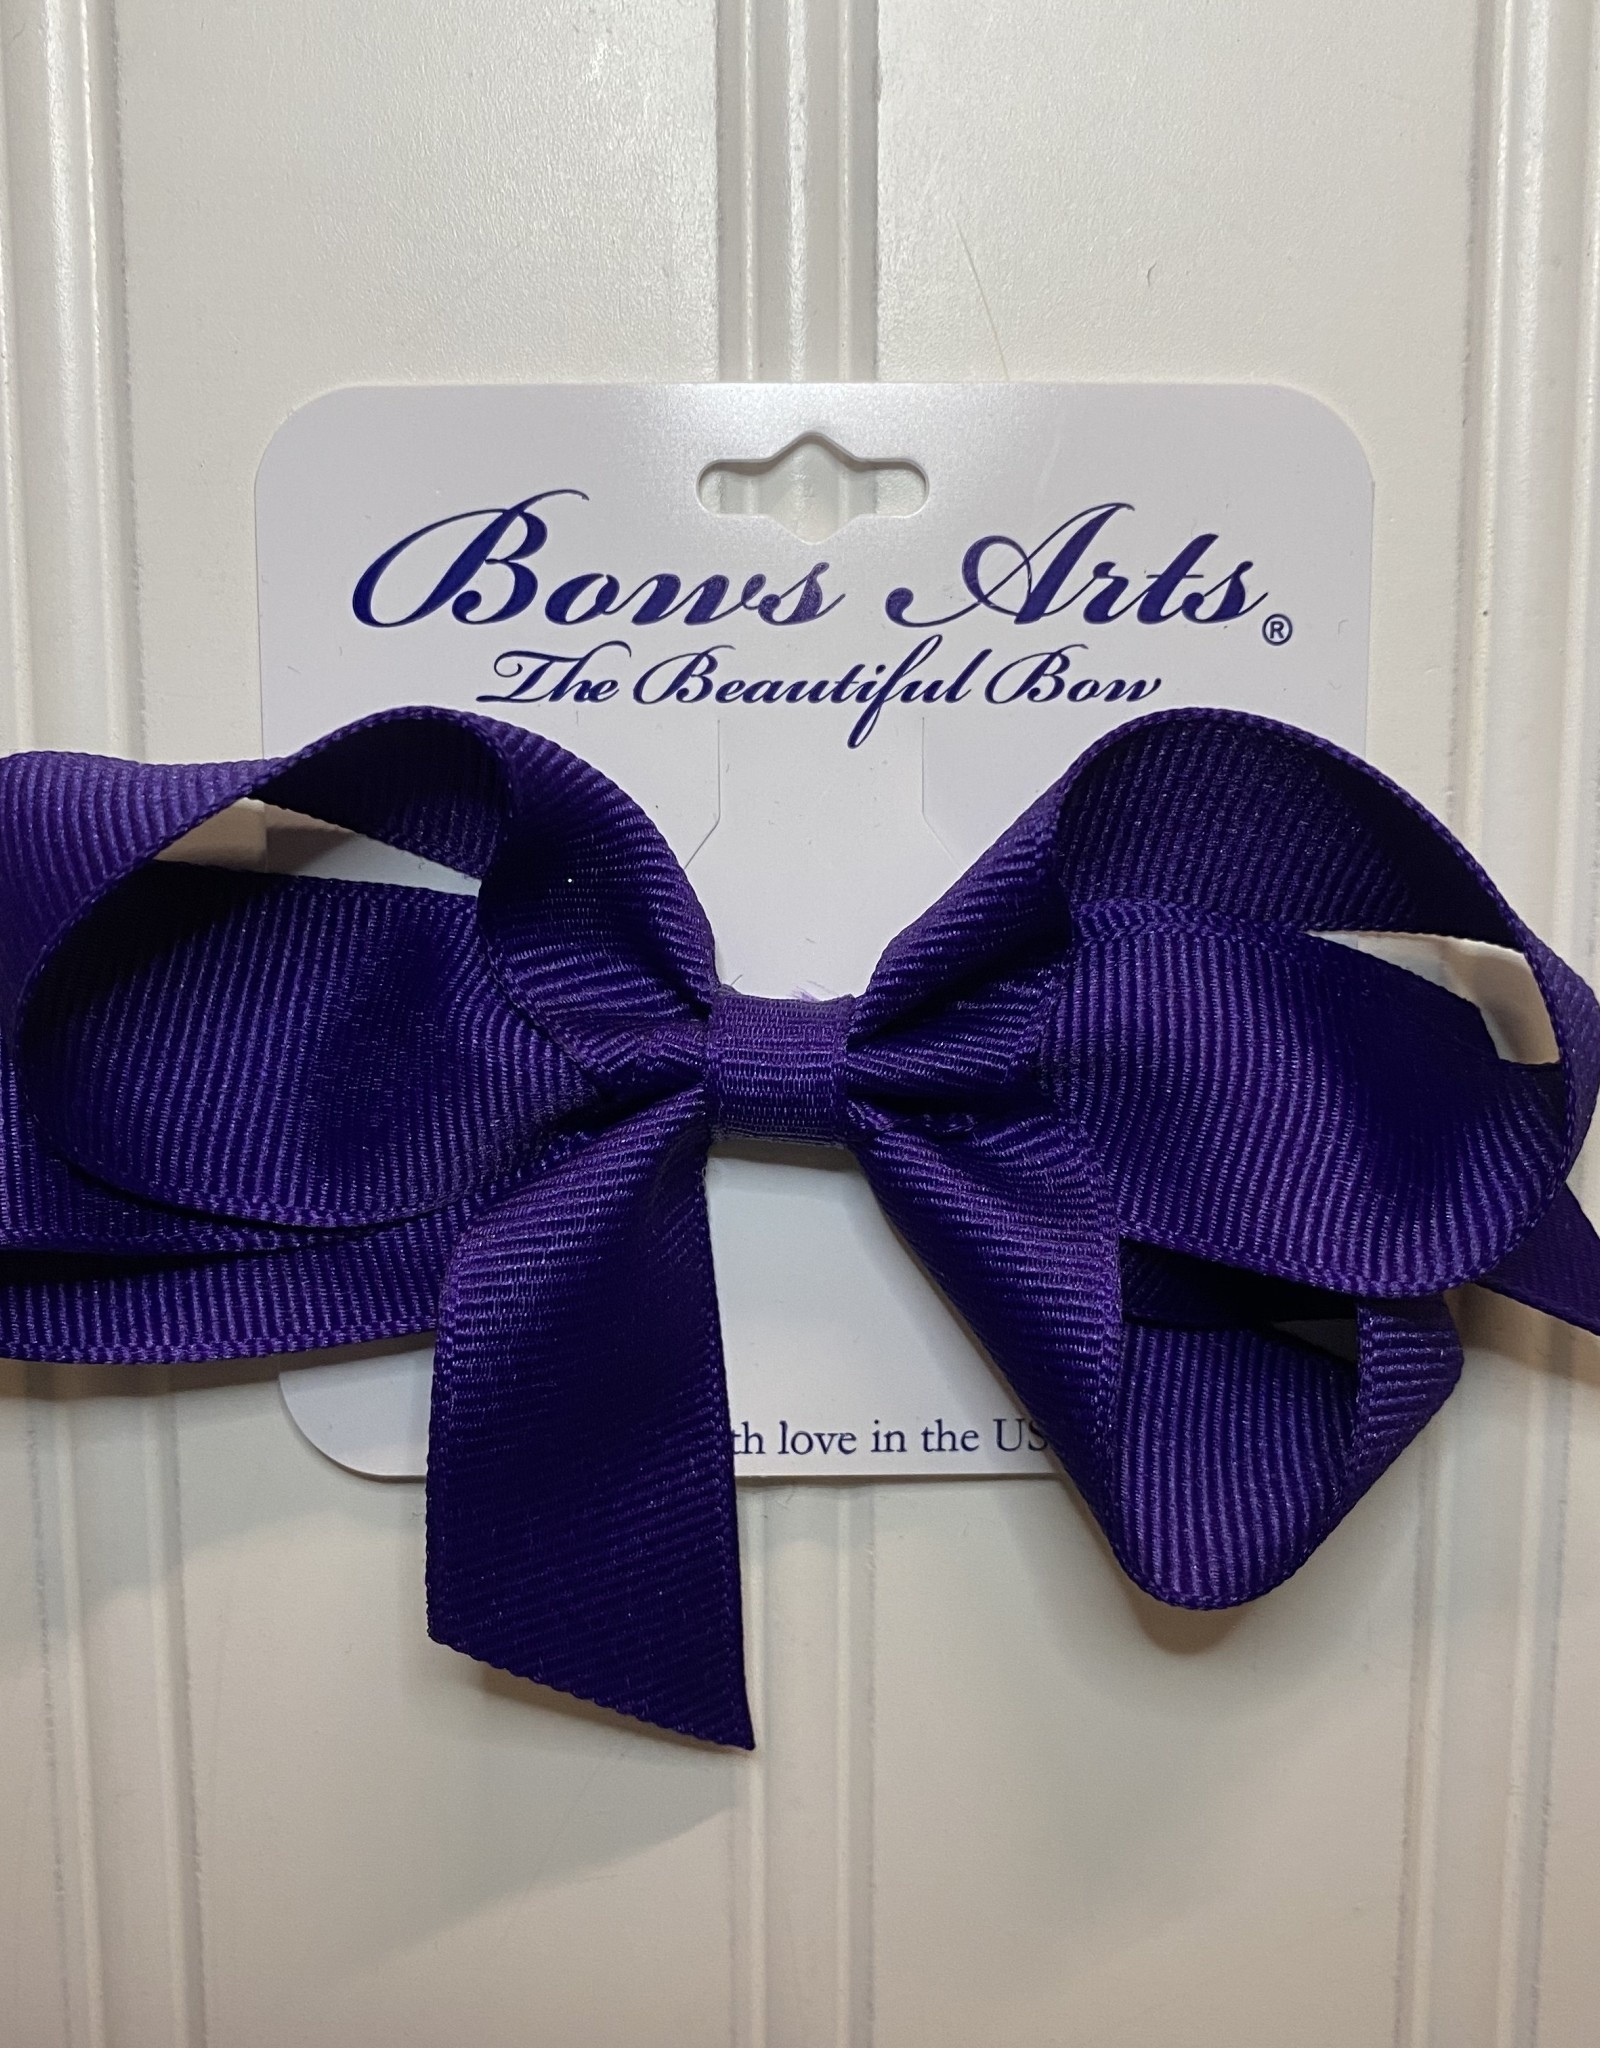 "Bows Arts Small Classic Bow 4"" - Regal Purple"